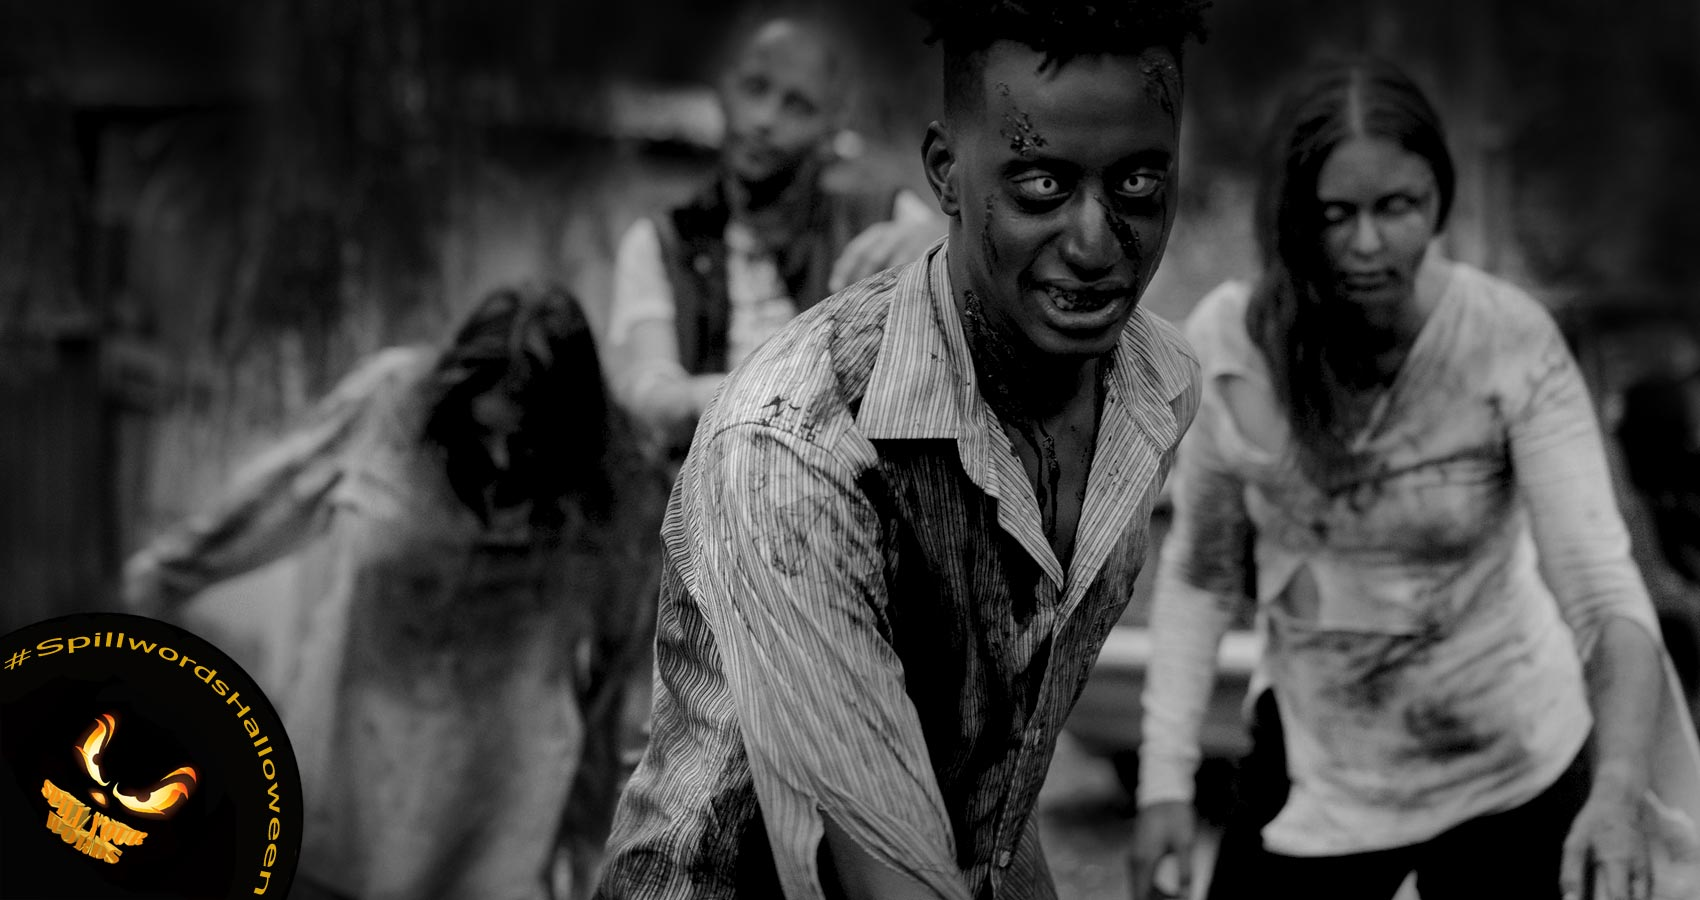 Zombies Dancing, micropoetry by Kevin Taylor at Spillwords.com